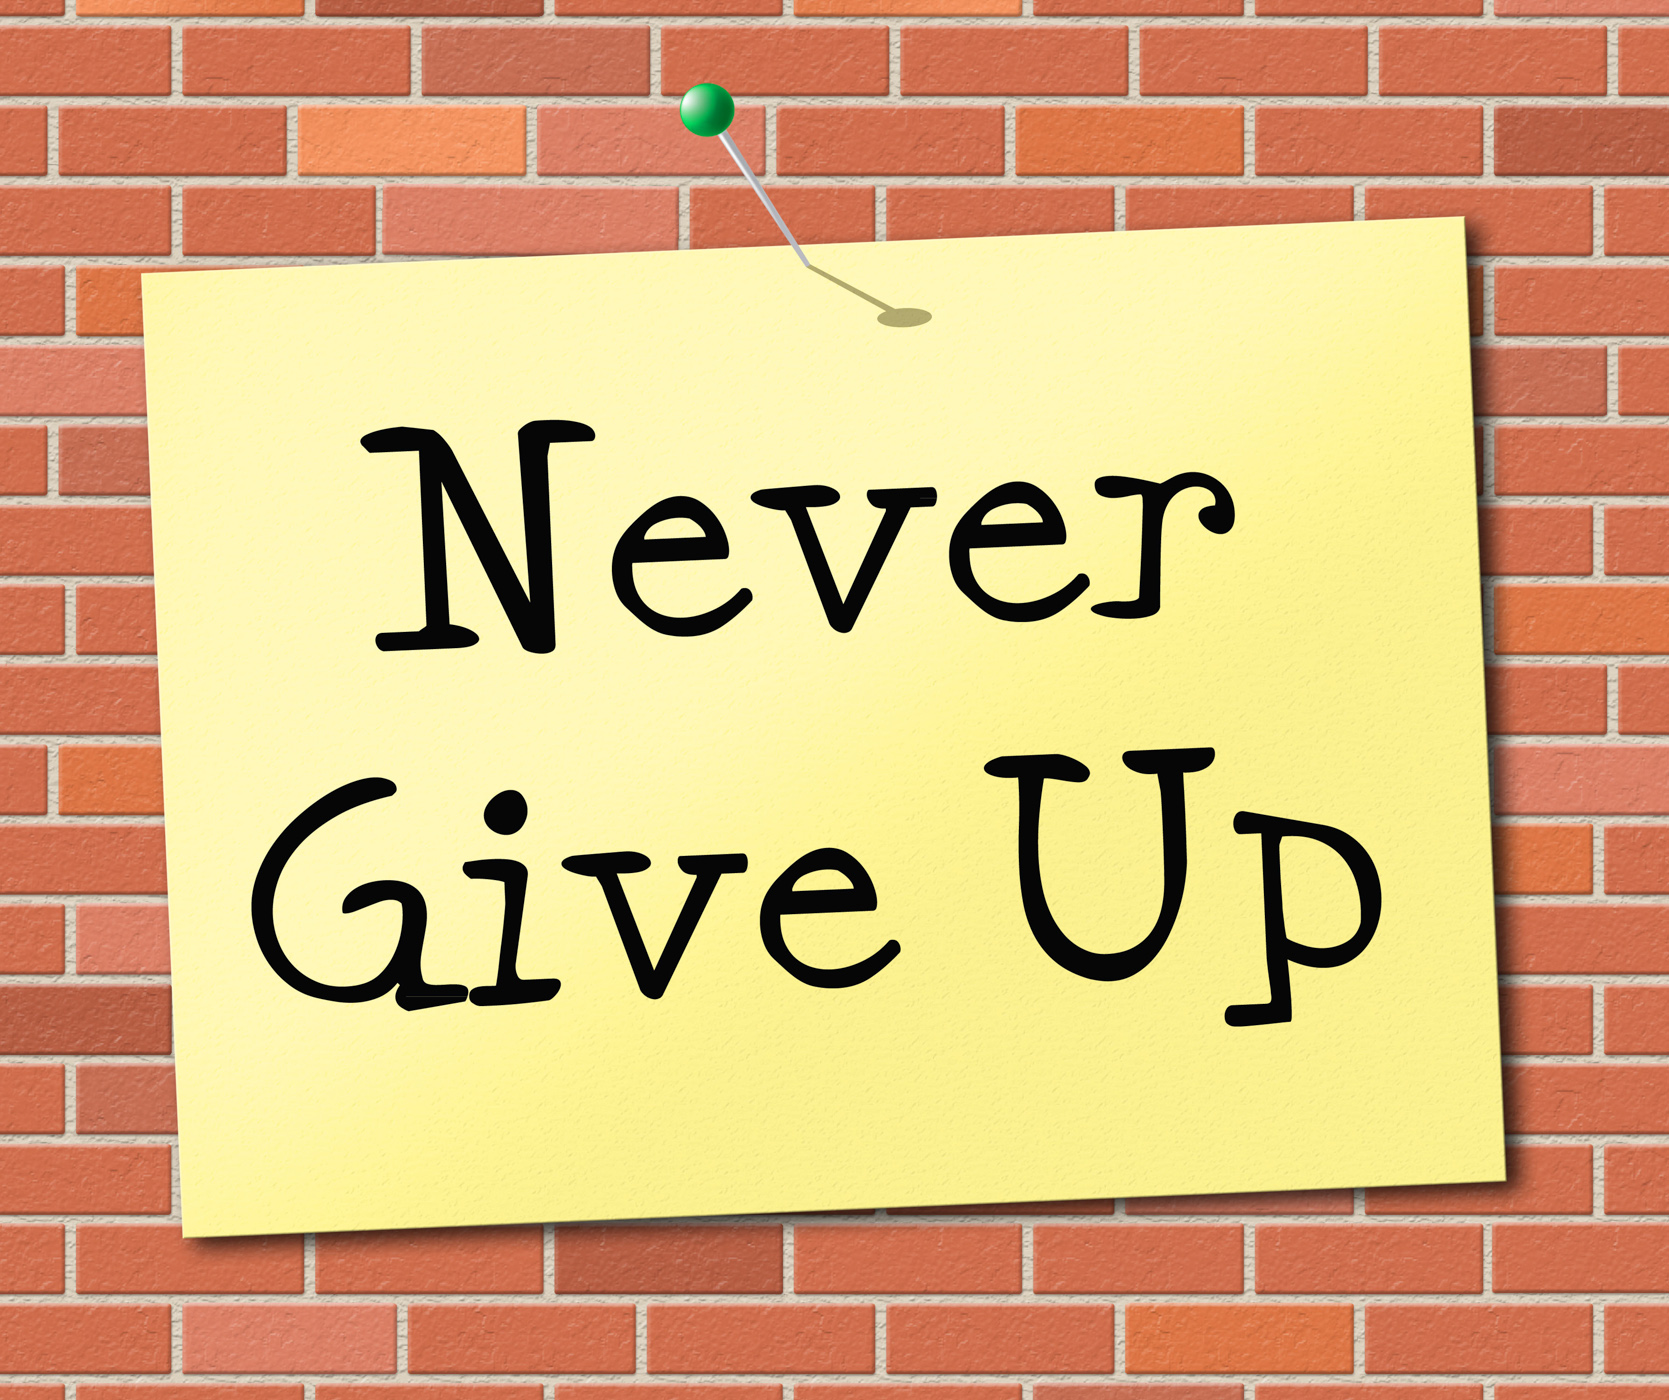 Never give up indicates motivating commitment and succeed photo